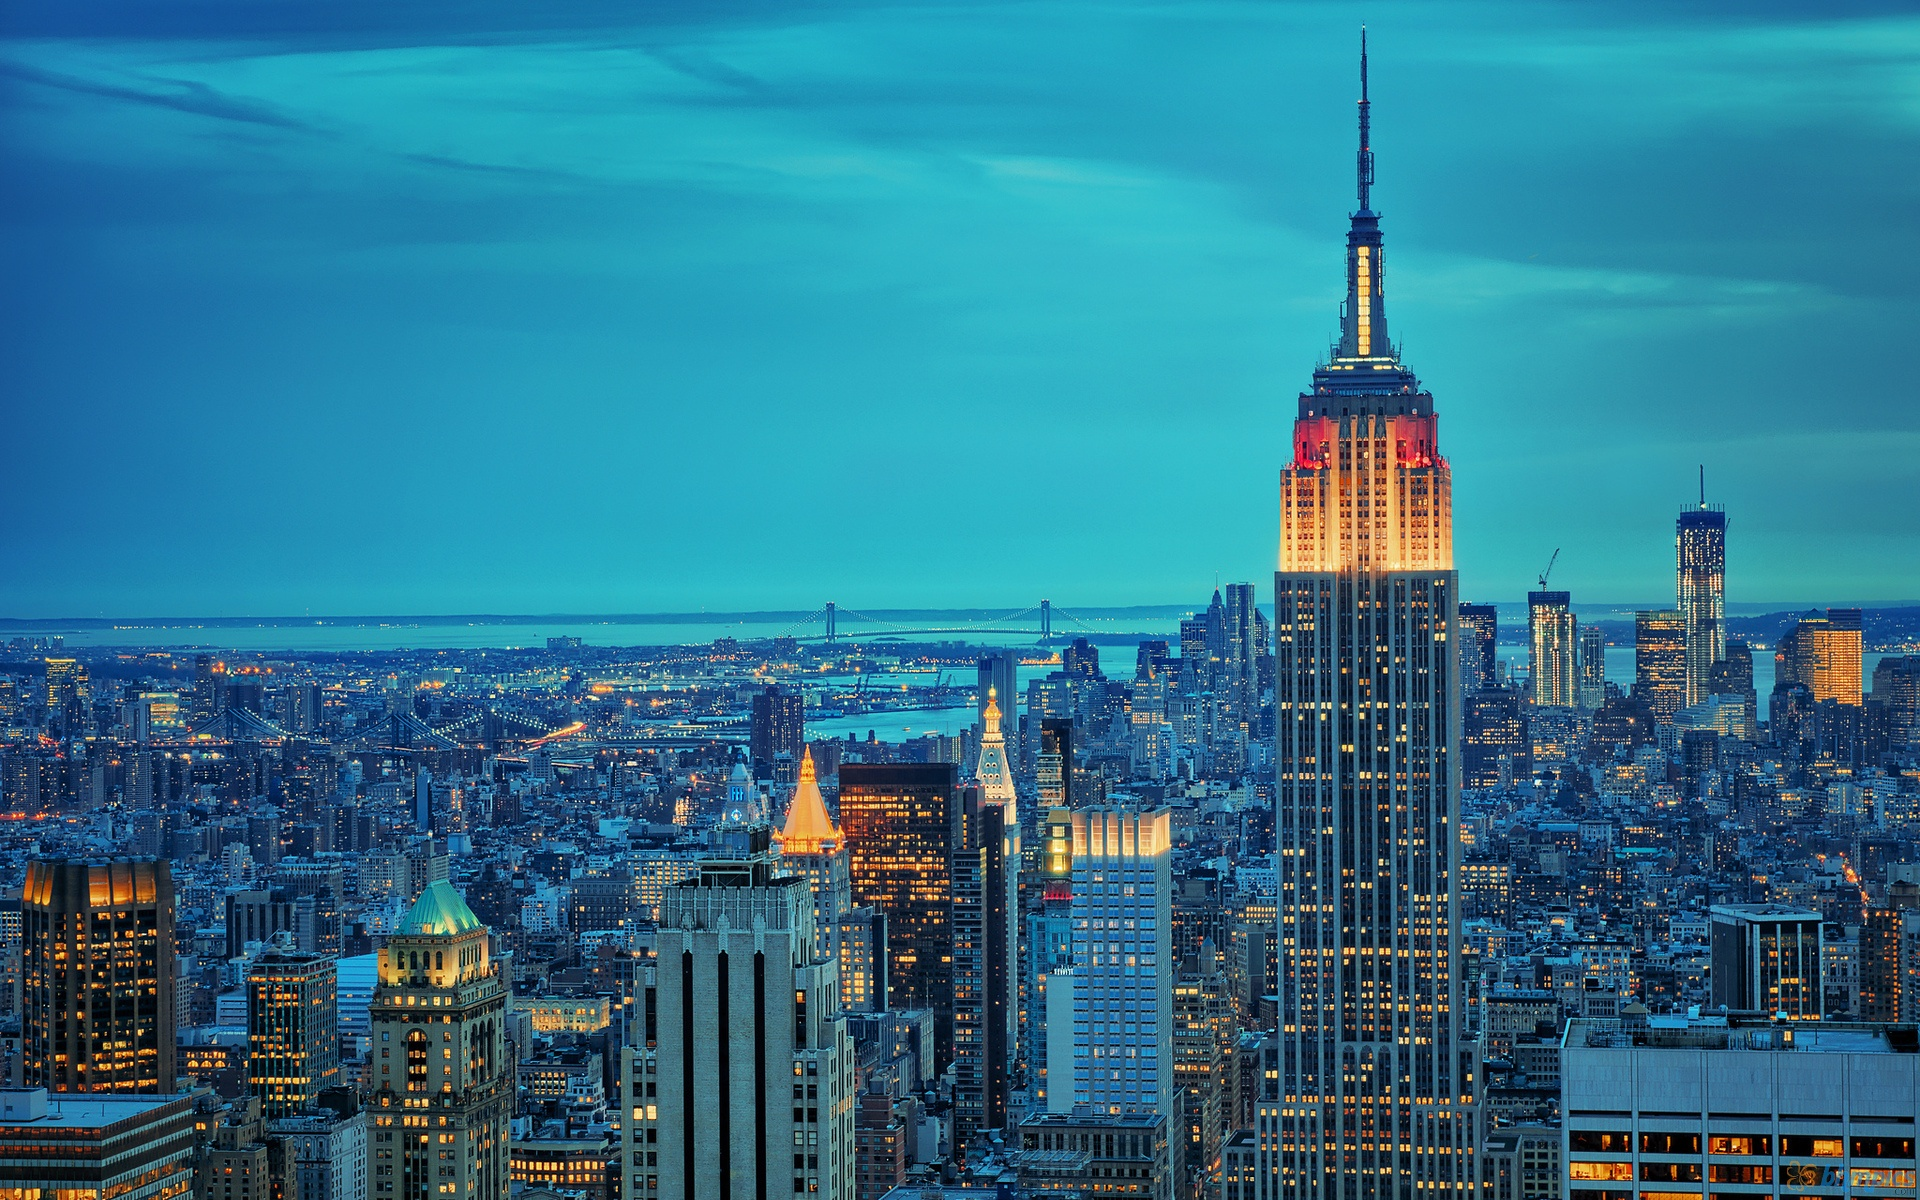 empire state building 30770